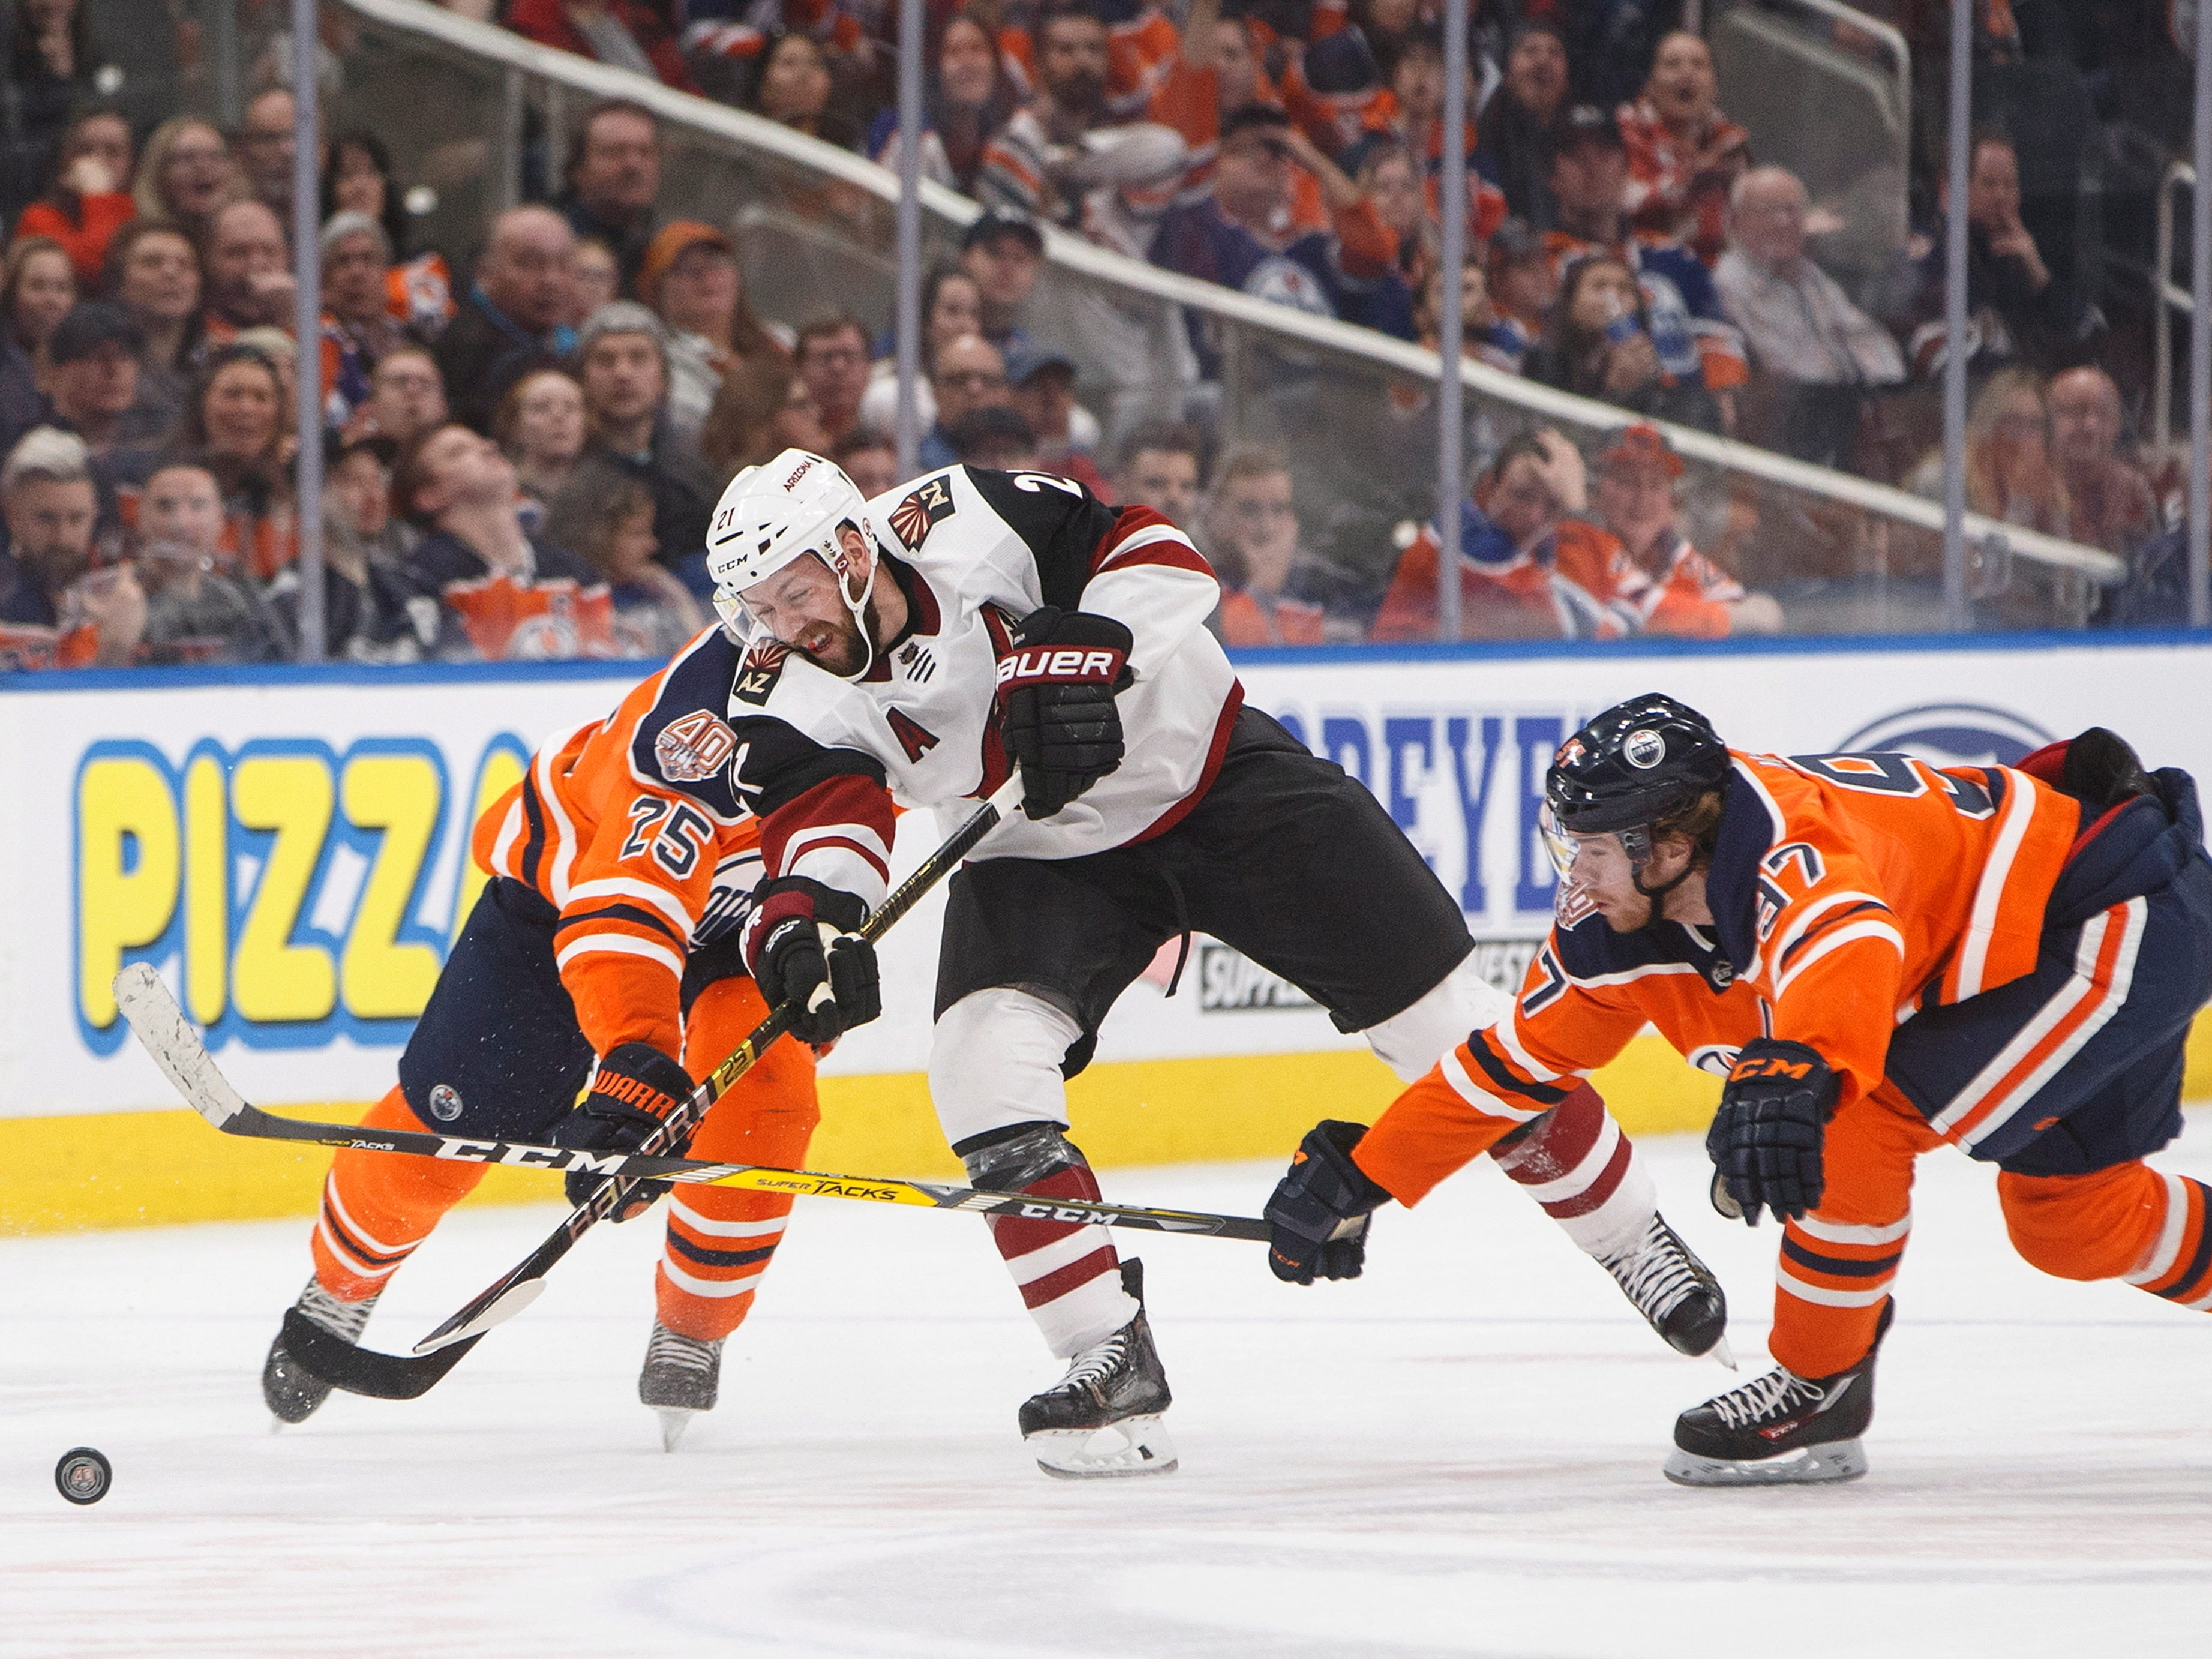 Arizona Coyotes' Derek Stepan (21) shoots as Edmonton Oilers' Darnell Nurse (25) and Connor McDavid (97) defend during the third period, Saturday, Jan. 12, 2019, in Edmonton Alberta. (Jason Franson/The Canadian Press via AP)